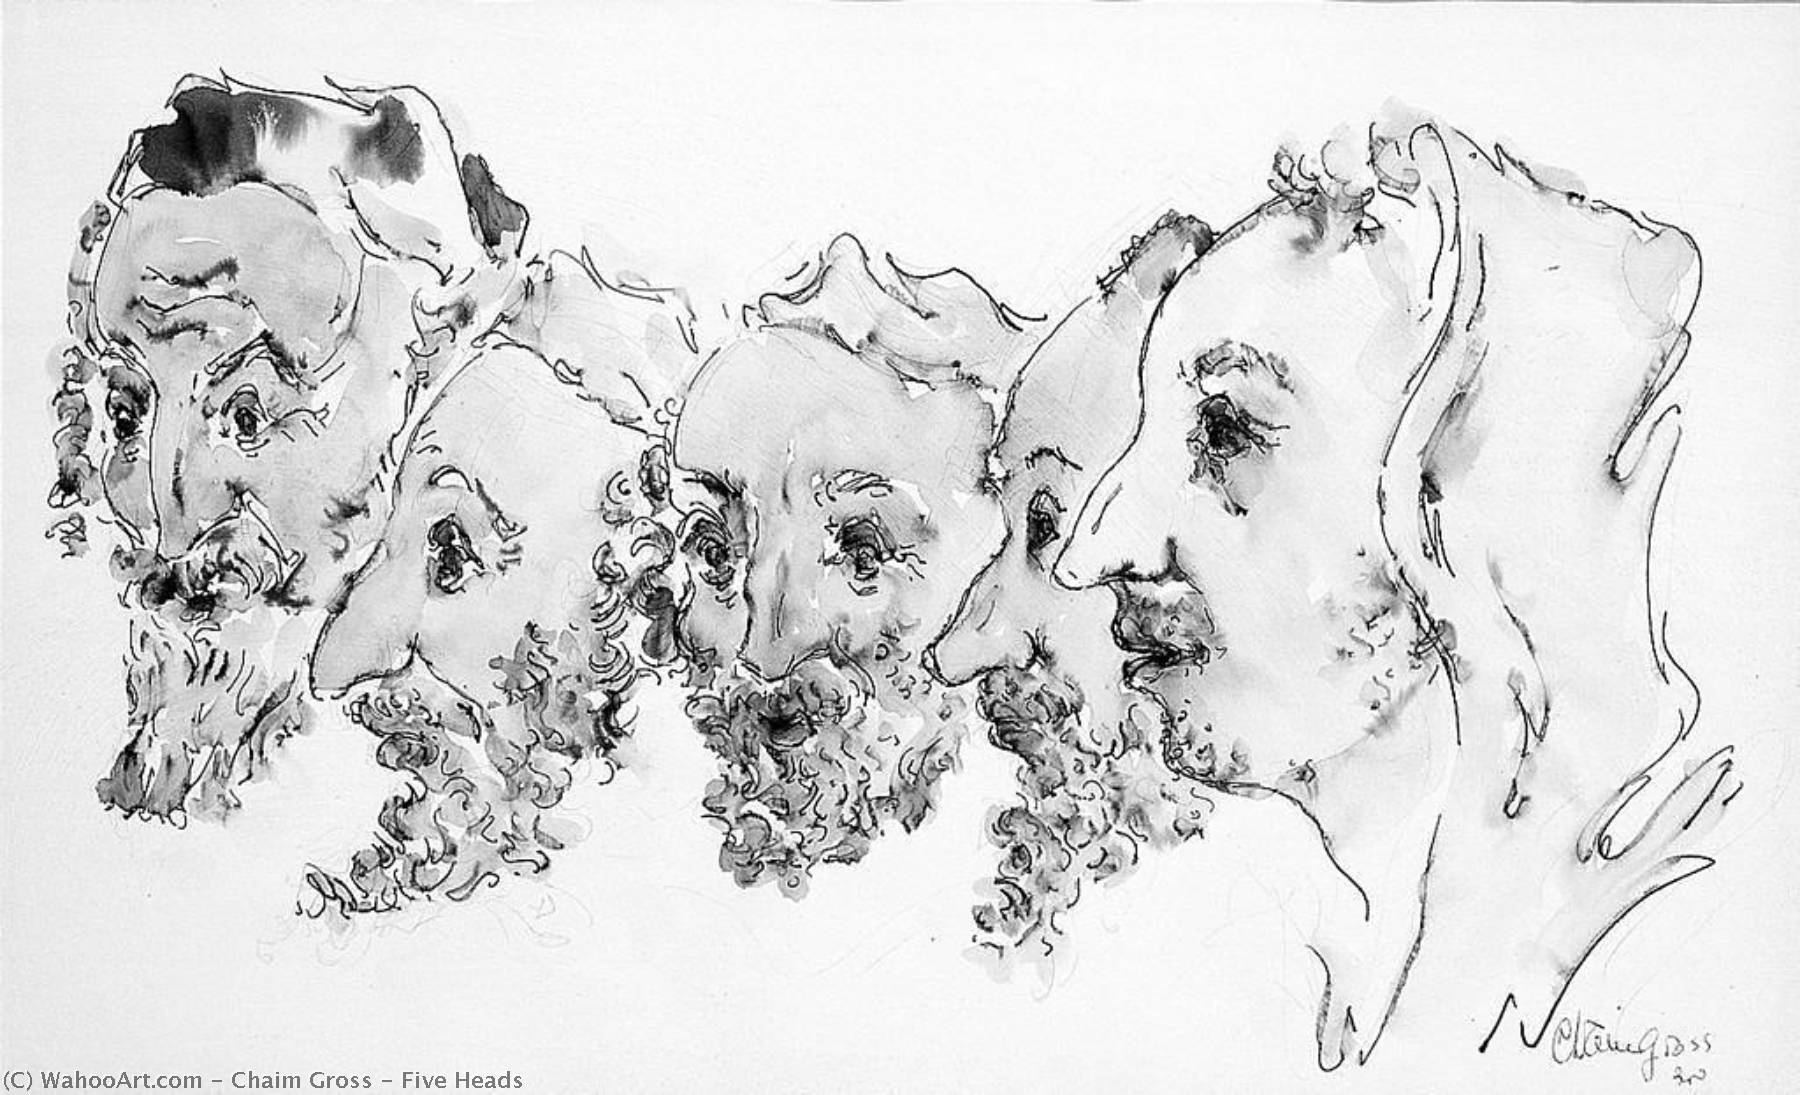 Five Heads, Watercolour by Chaim Gross